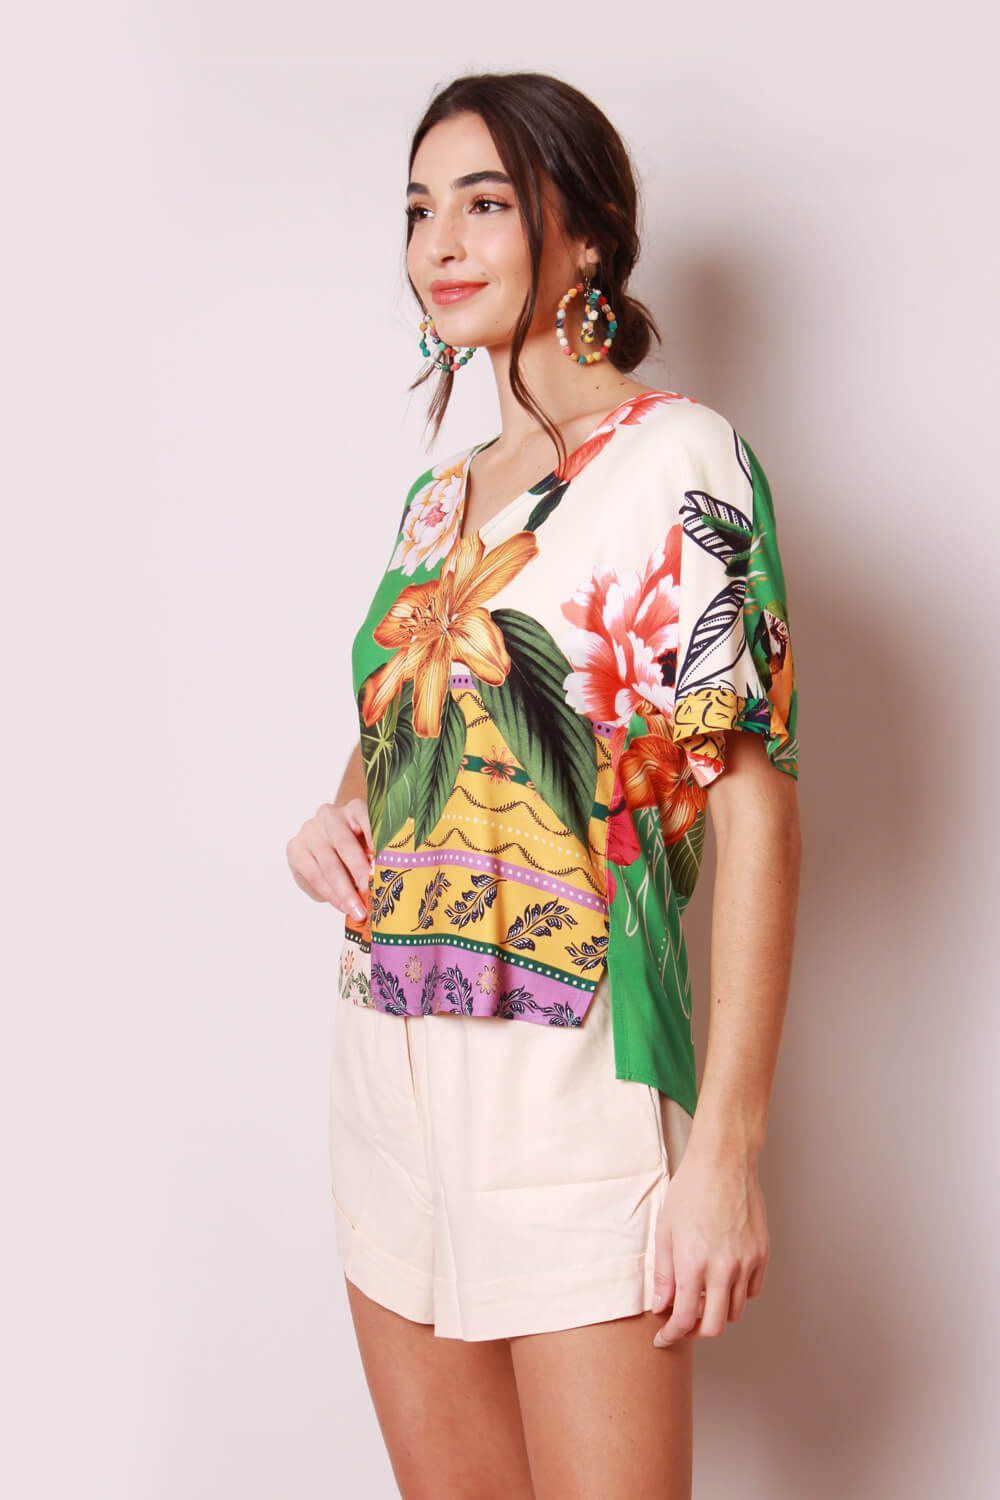 RE-VIVA BLUSA ESTAMPADA OFF WHITE E VERDE